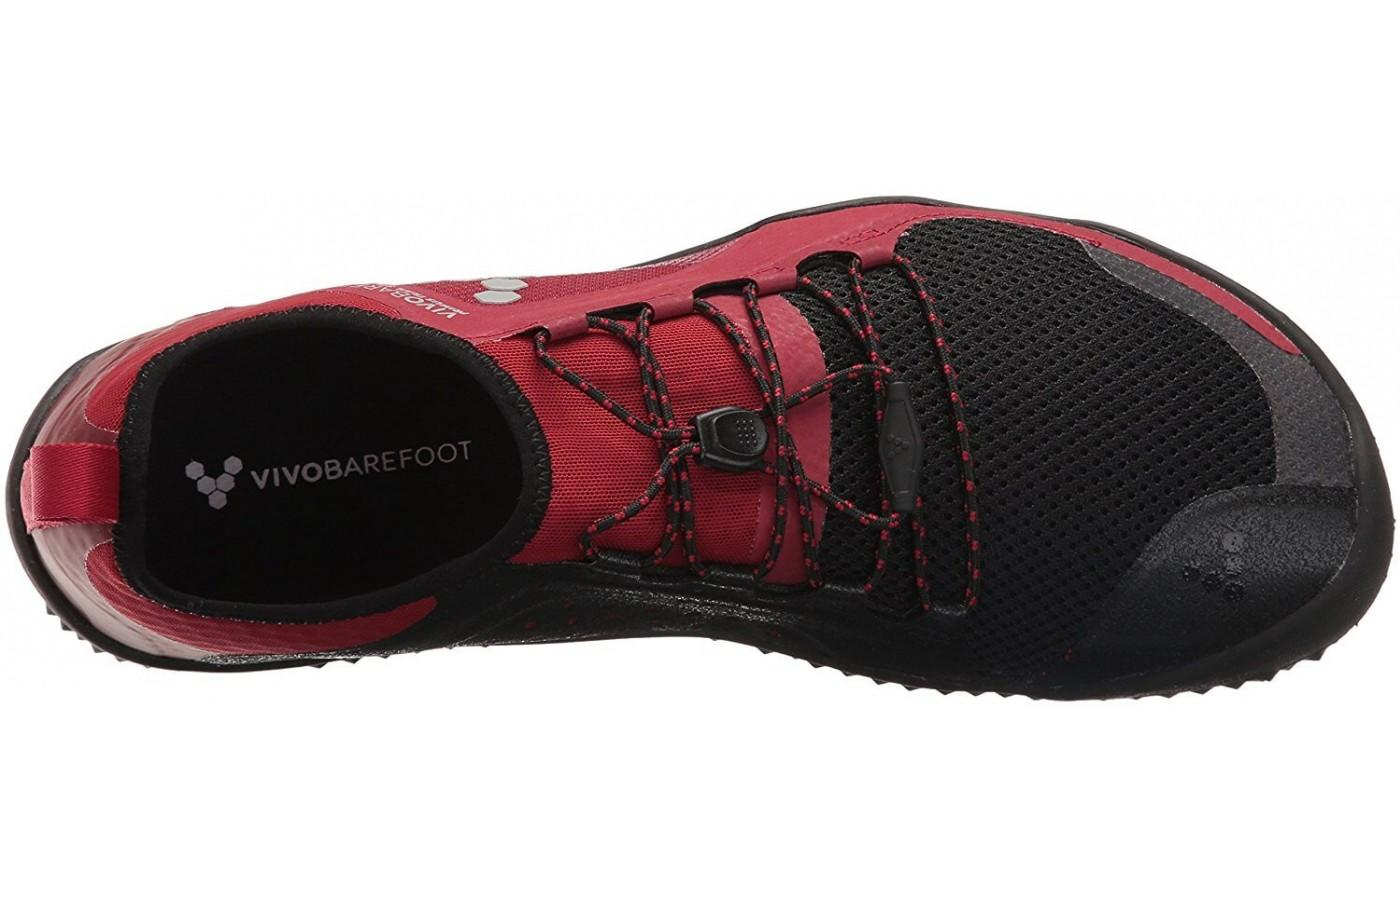 The upper provides a snug, sock like feel for the runner.